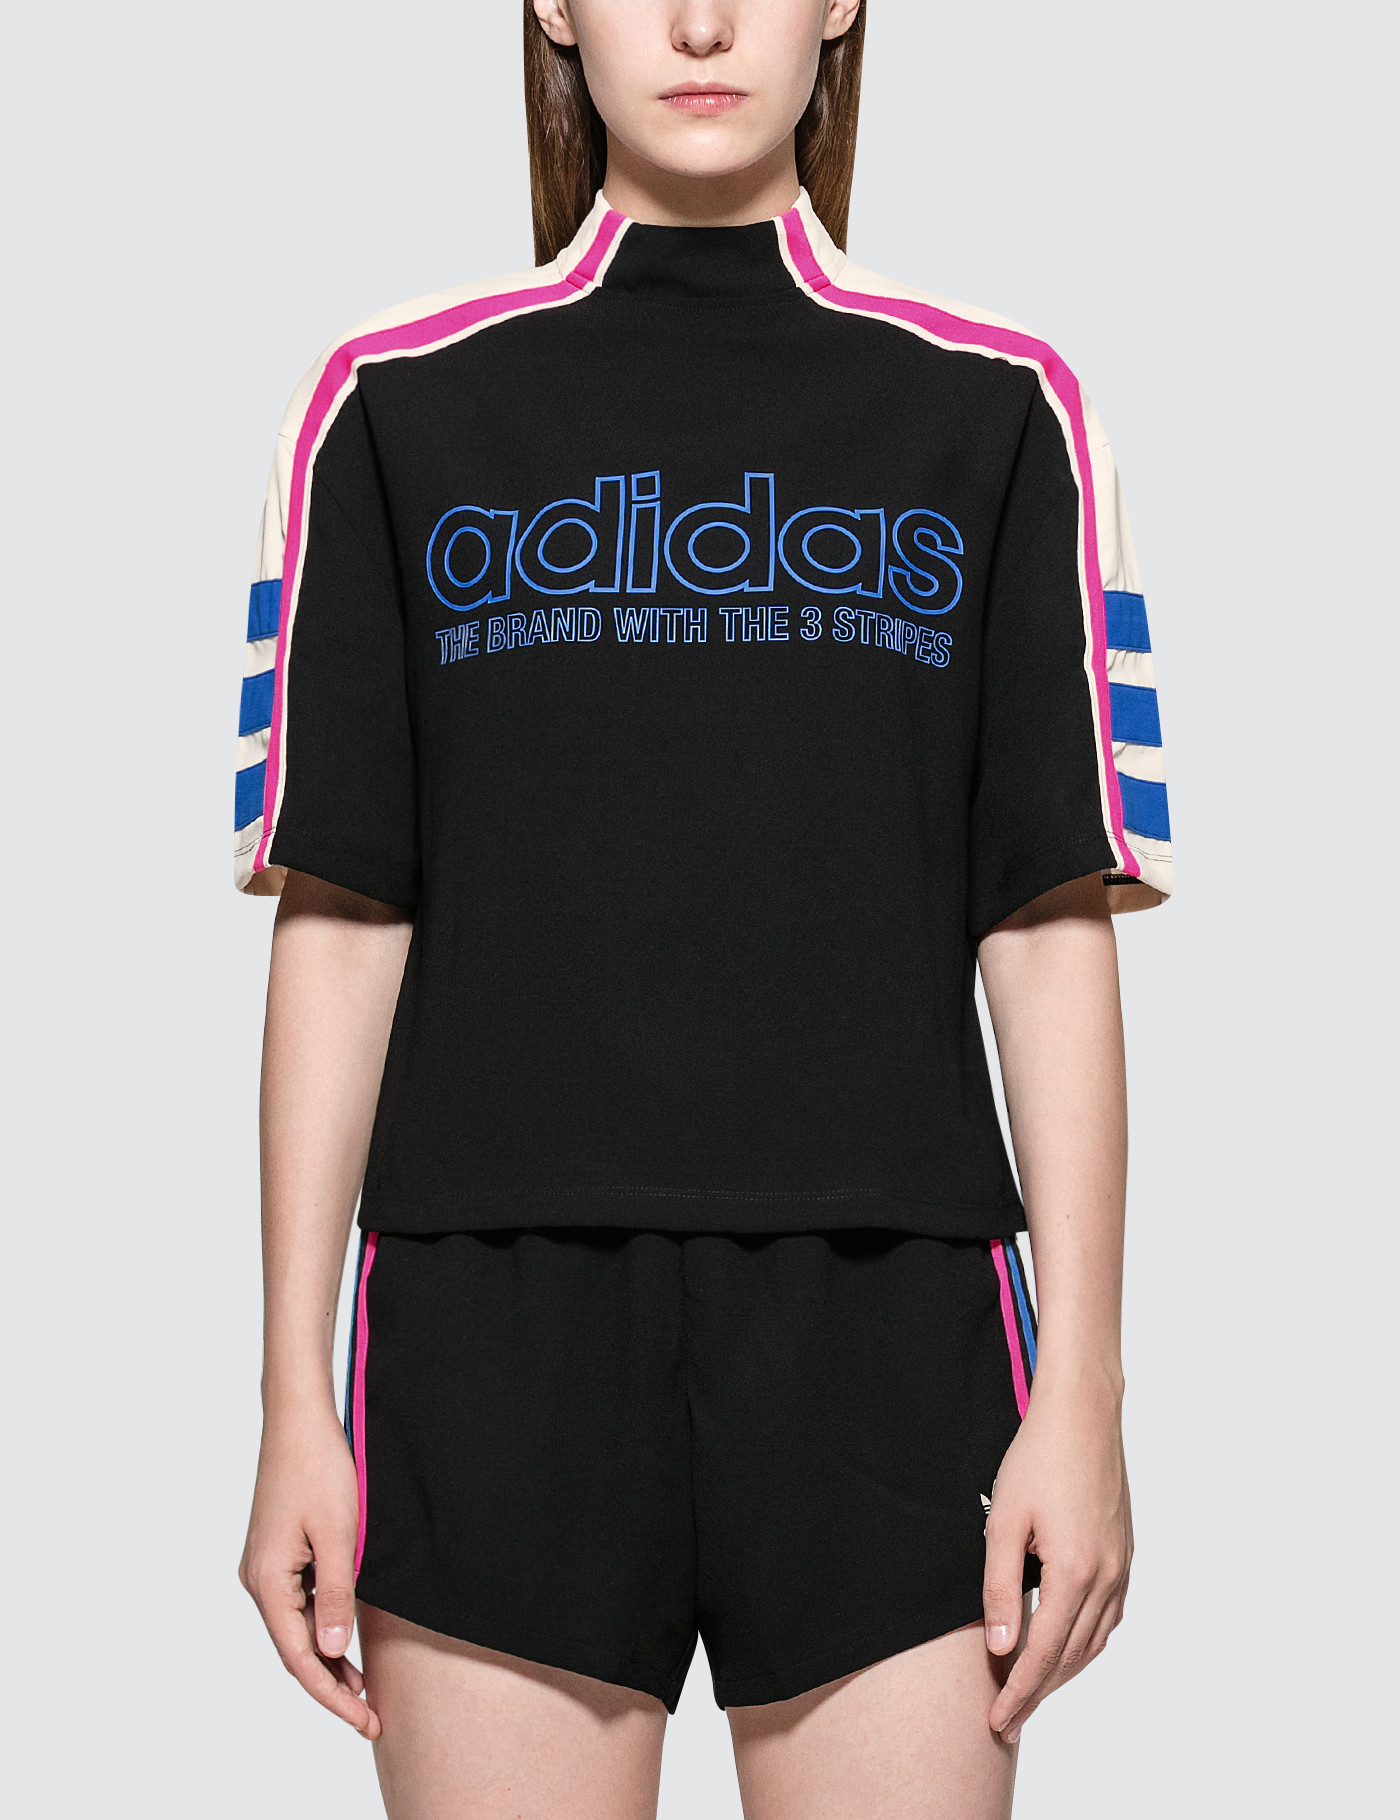 t shirt adidas original indonesia